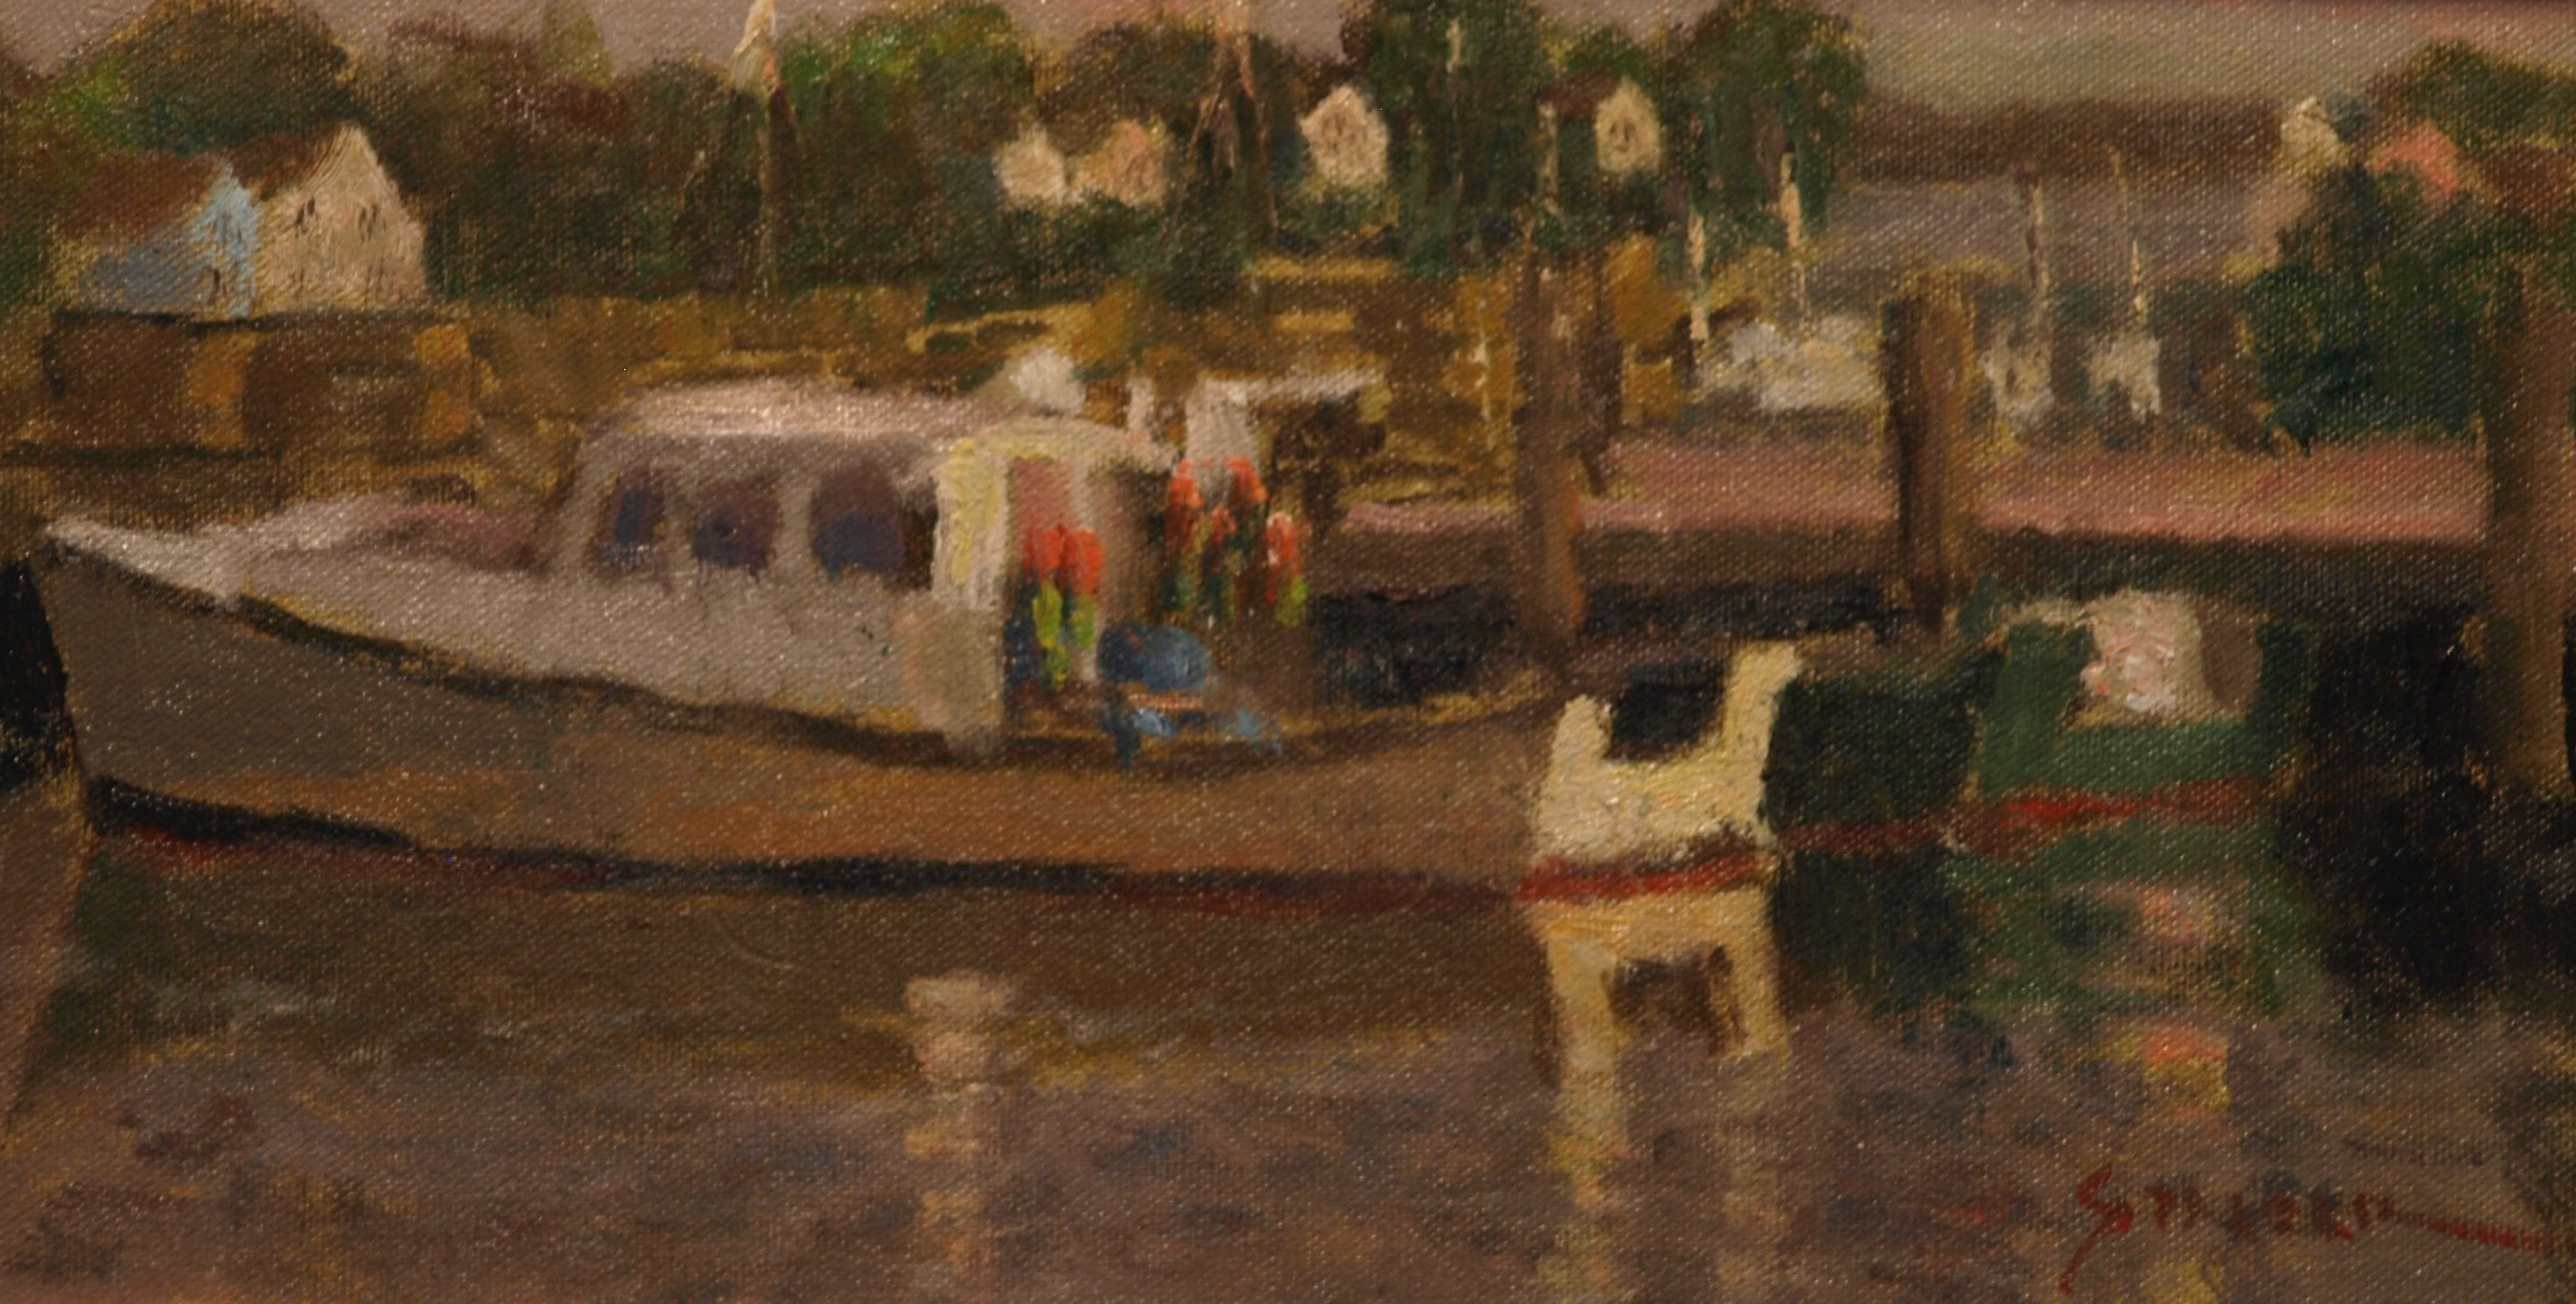 Fishing Boat - Stonington, Oil on Canvas on Panel, 8 x 14 Inches, by Richard Stalter, $225